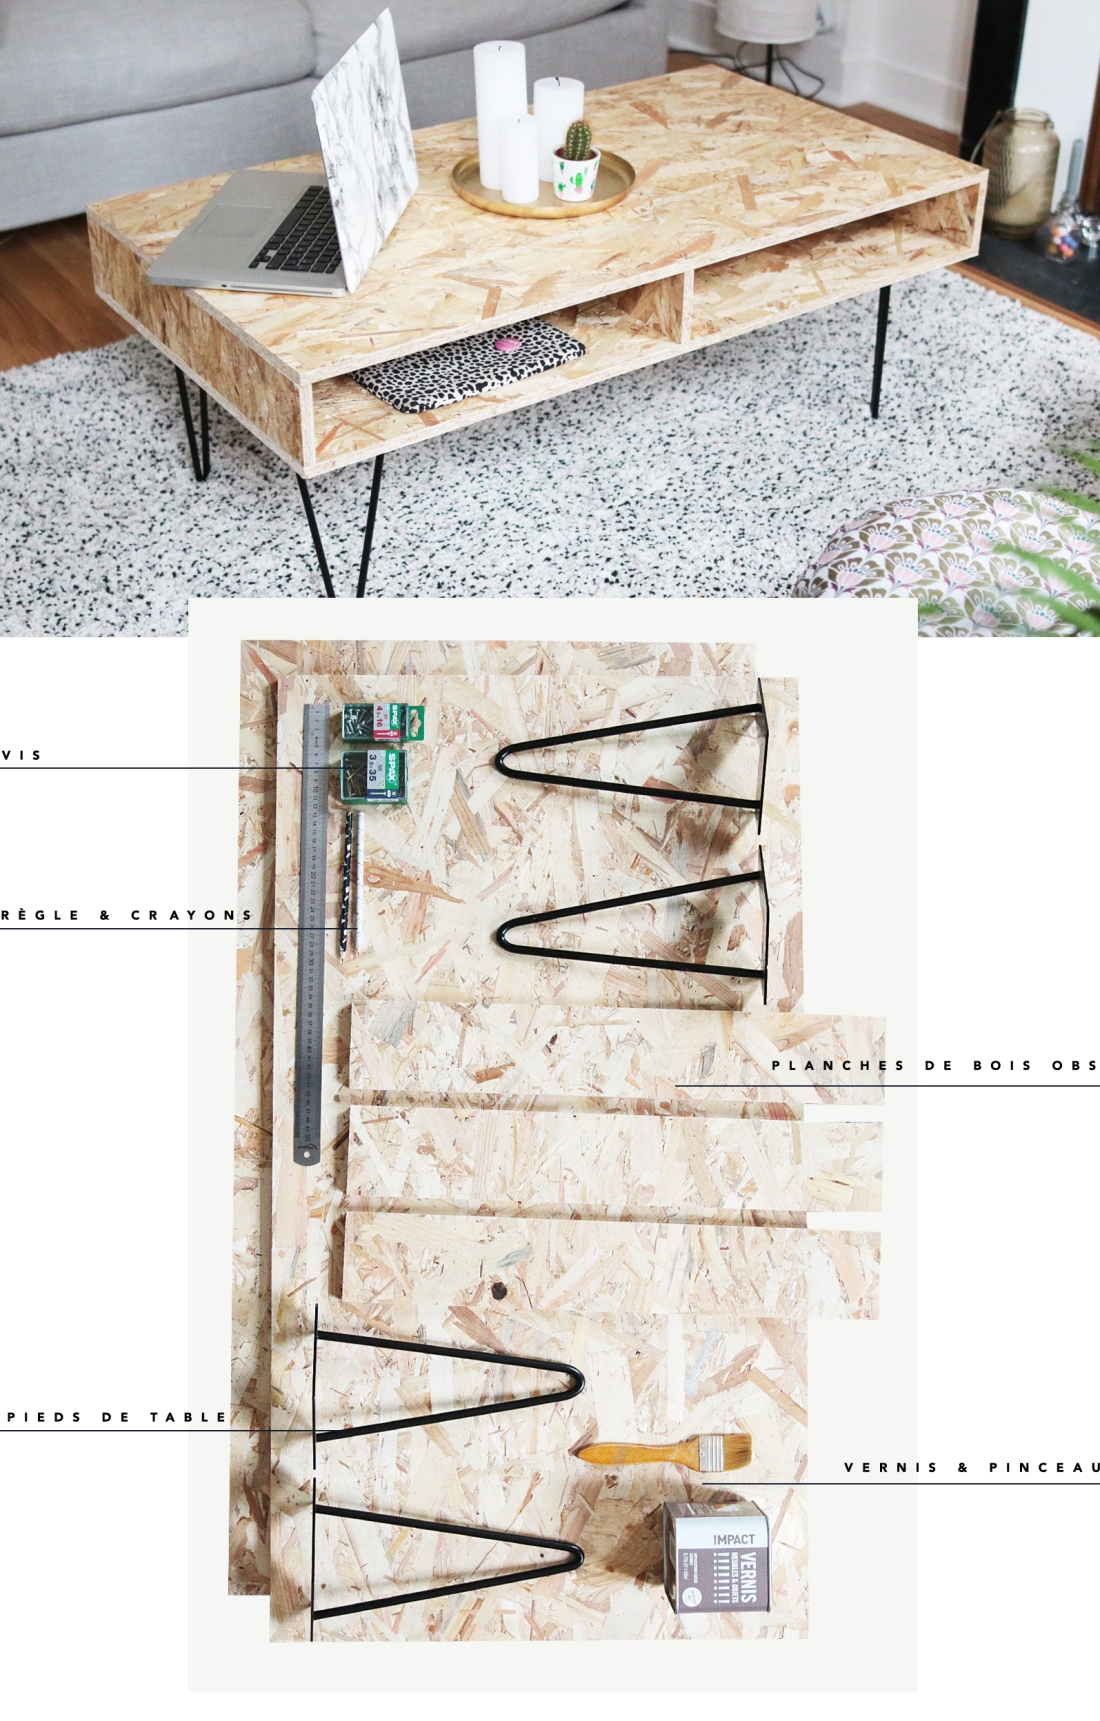 Diy Deco Realiser Une Table Basse Design En Bois Osb